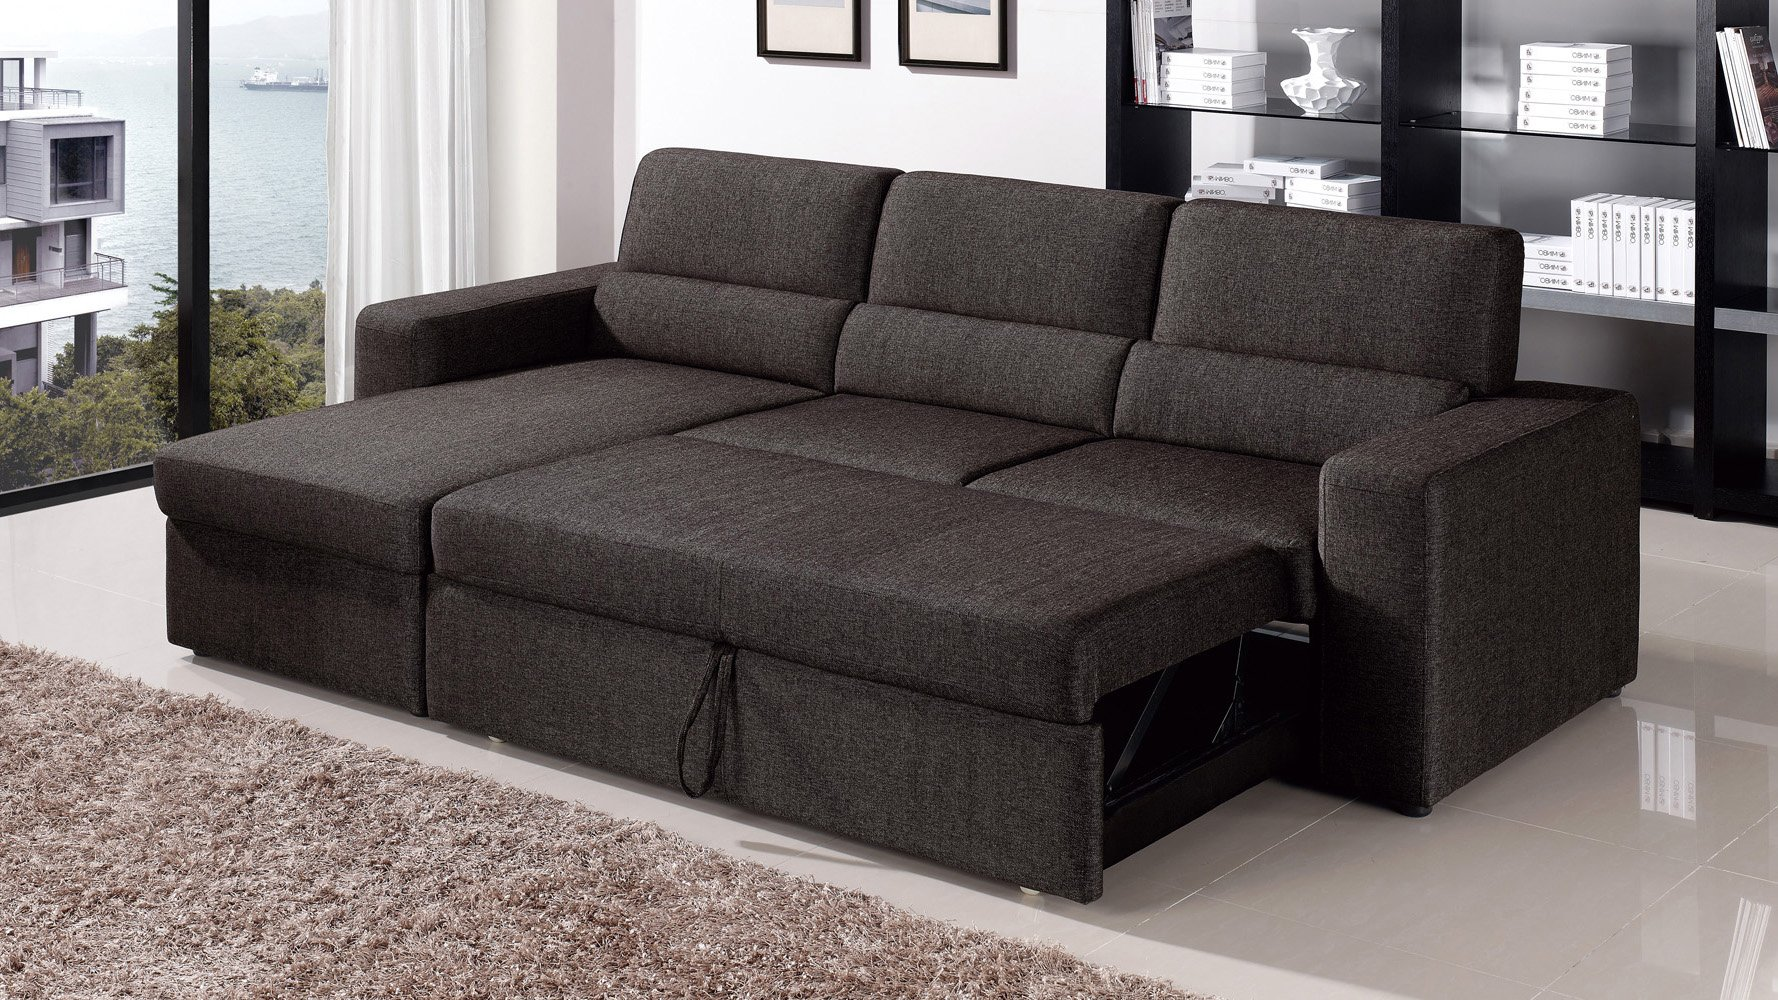 Small Sleeper Sofa Sectional With Chaise 1025thepartycom